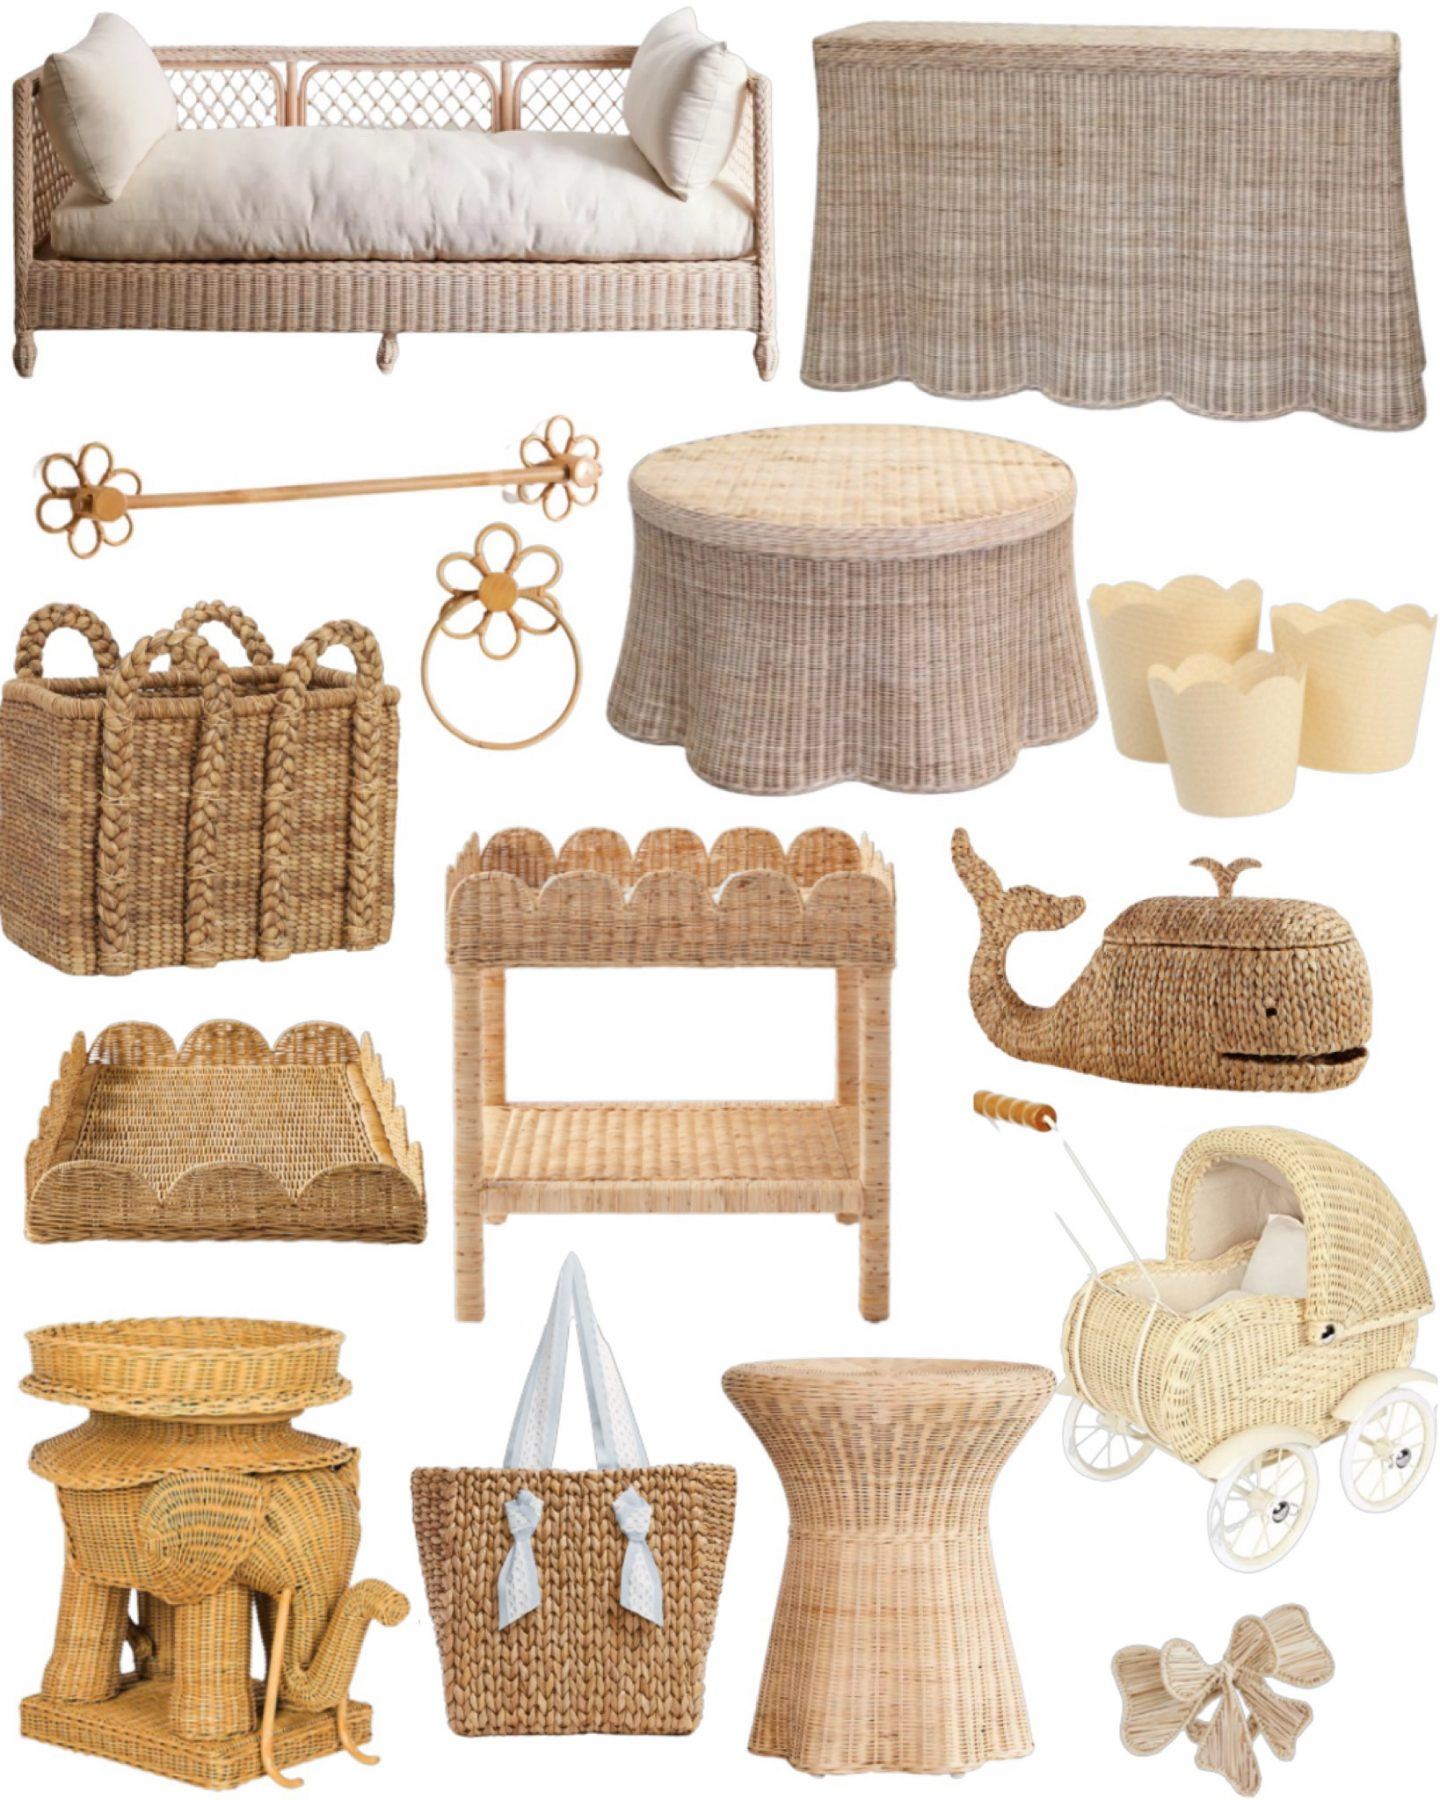 Wicker and rattan home